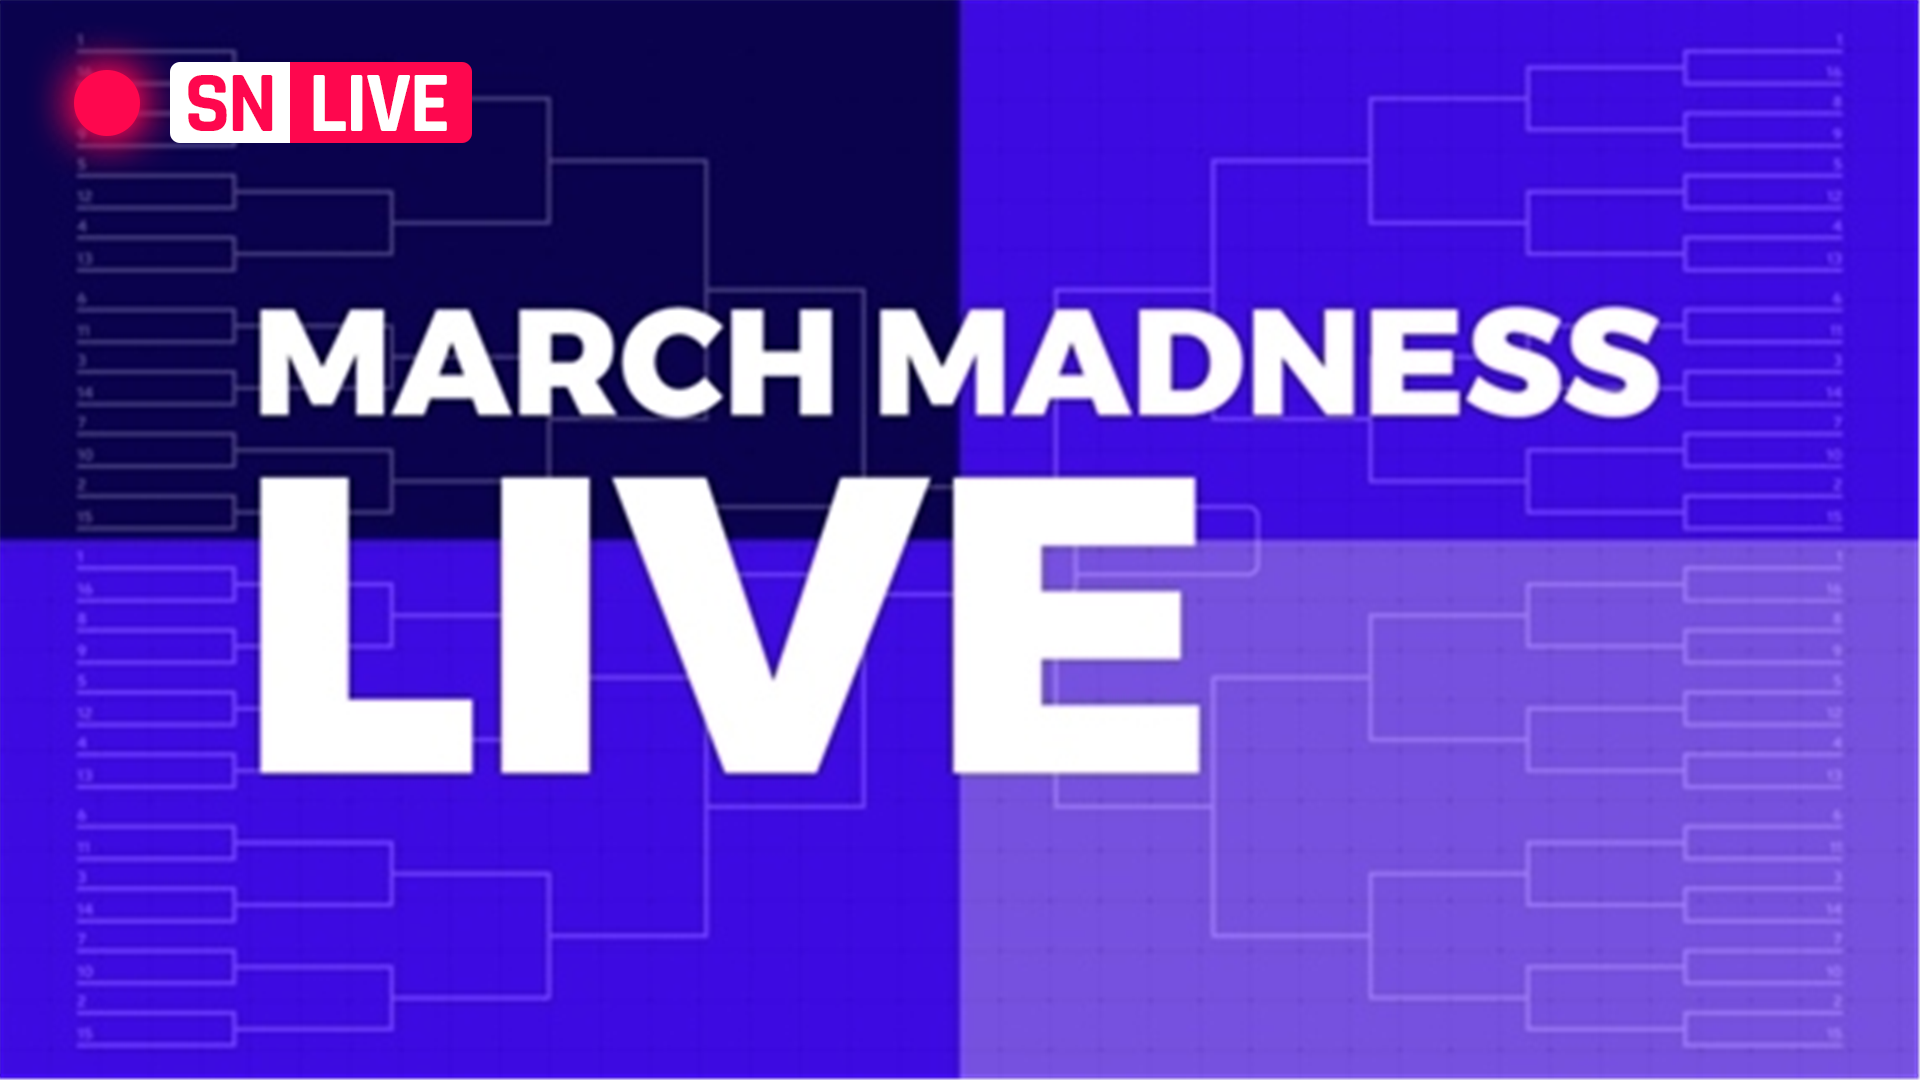 image regarding March Madness Tv Schedule Printable referred to as March Insanity dwell bracket: Total timetable, ratings, how towards